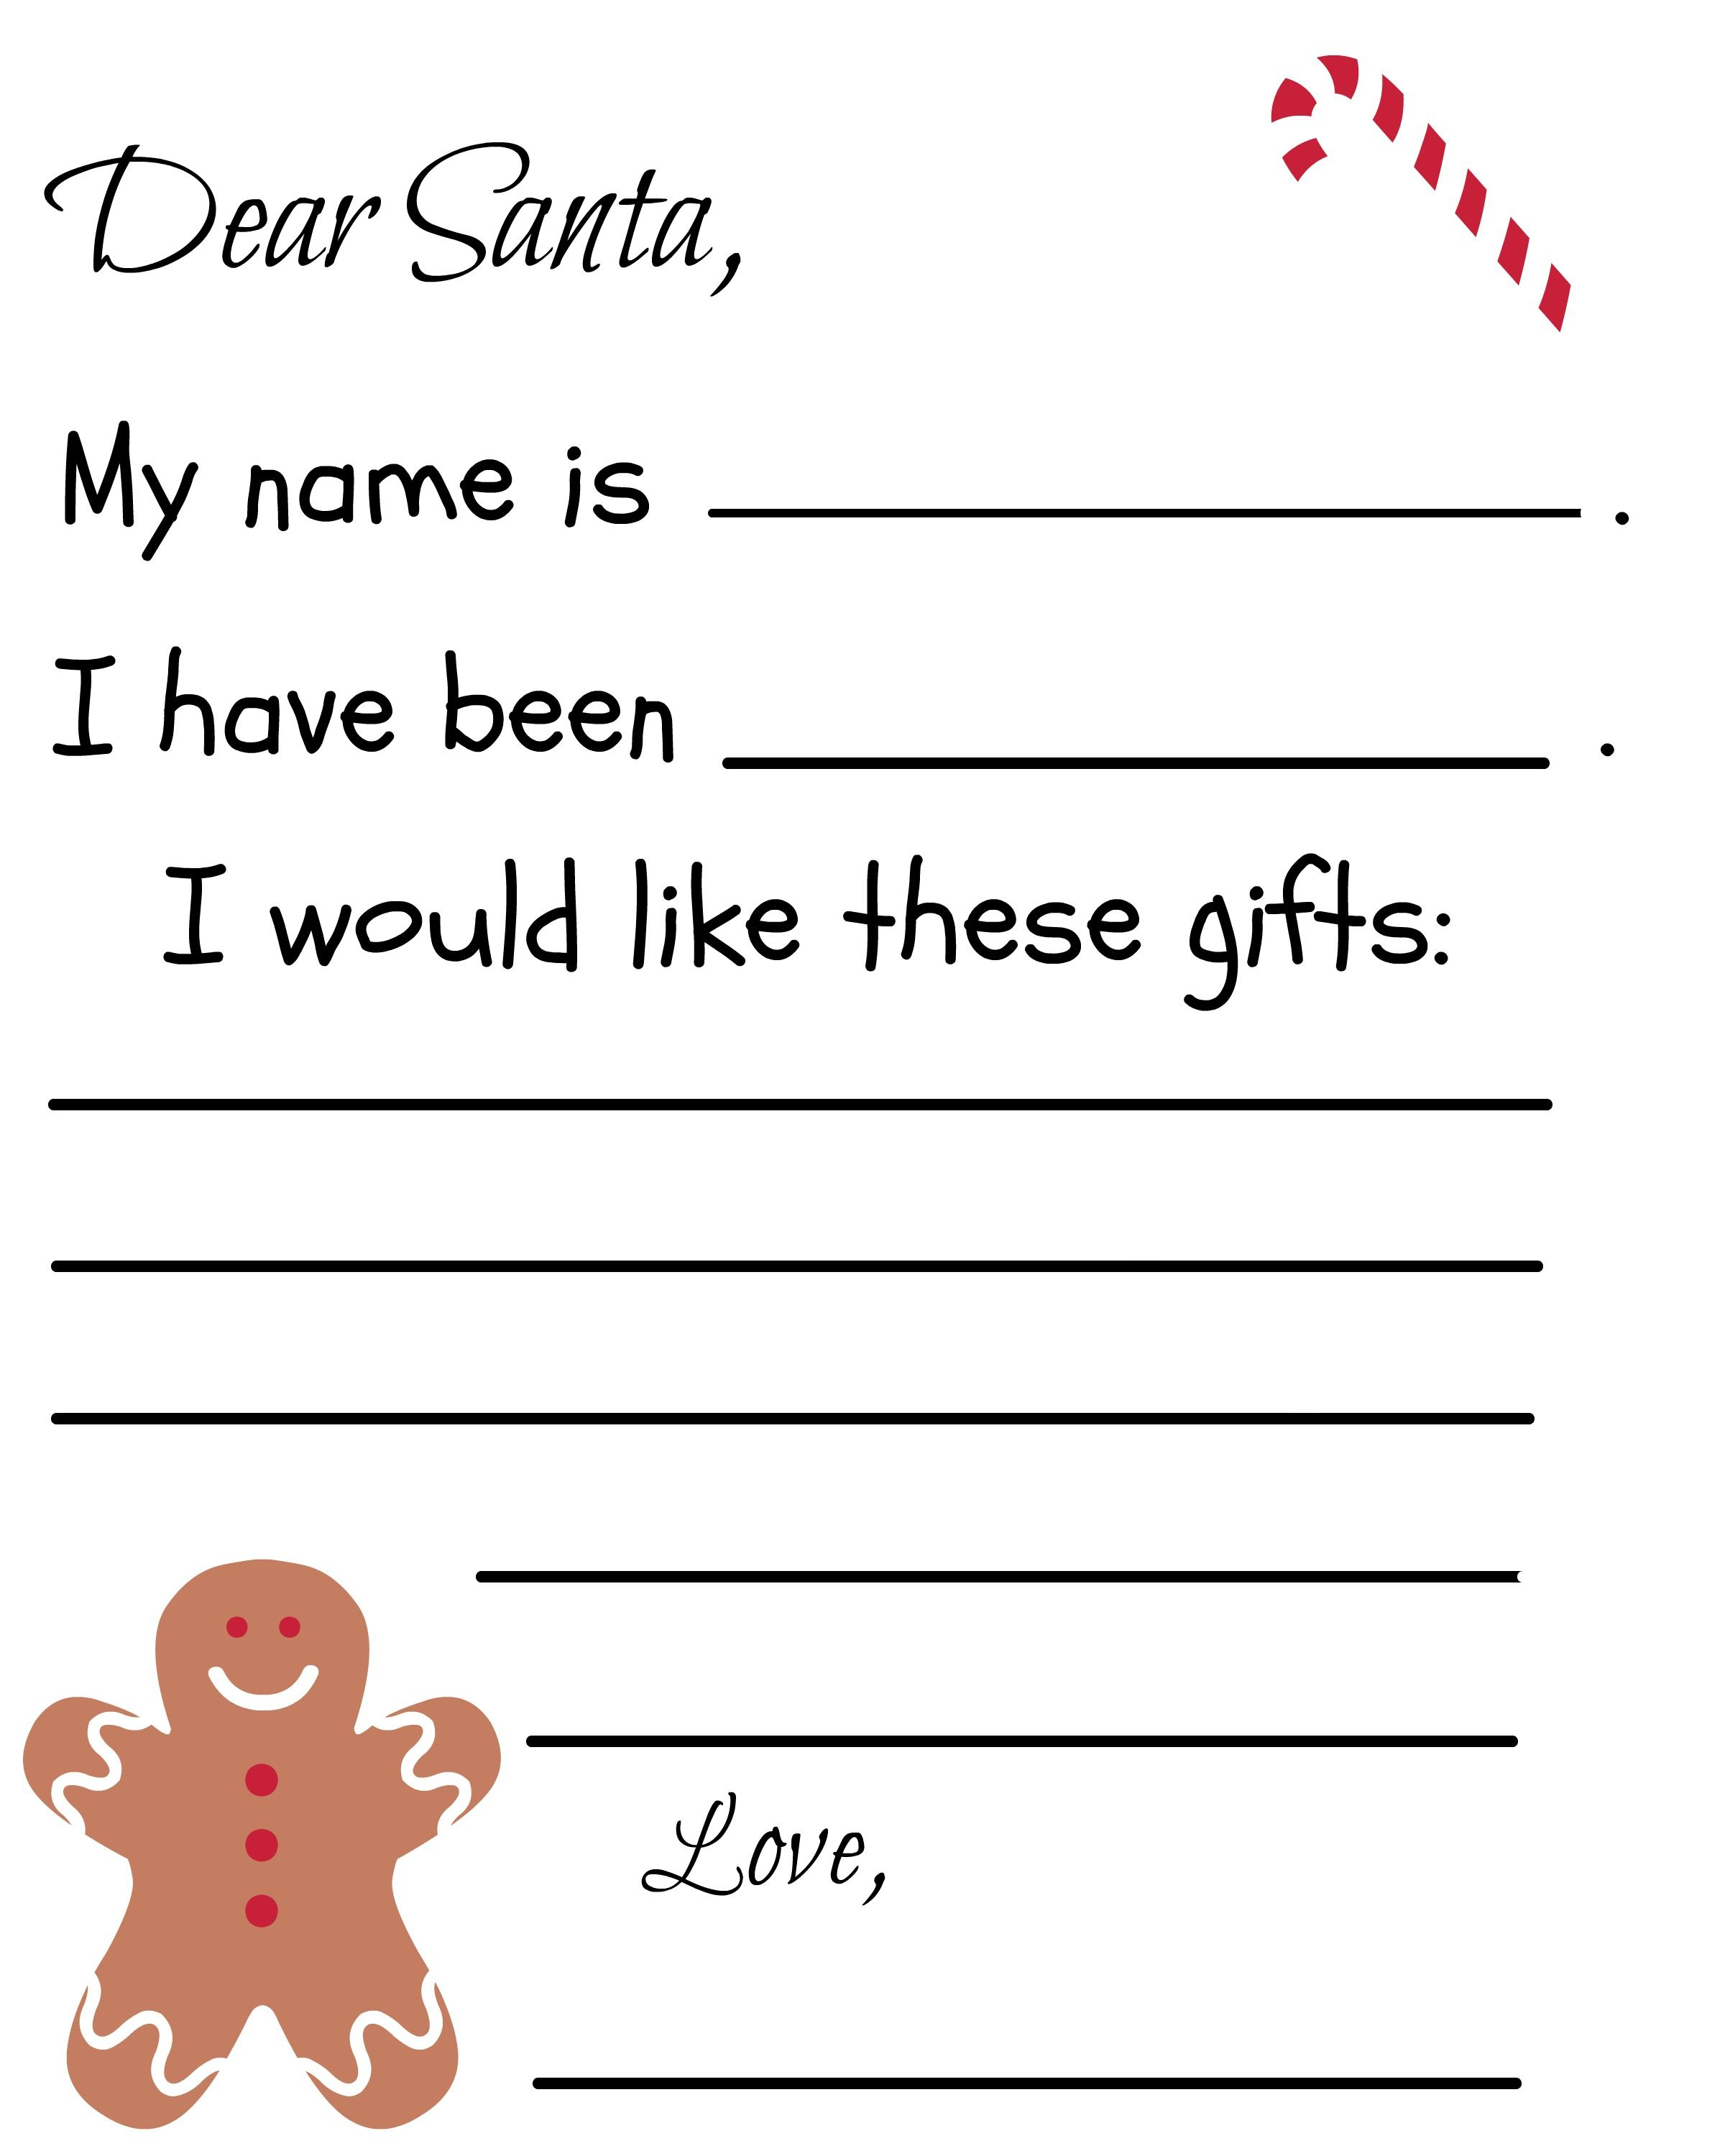 Free Letter to Santa Template Printable - Free Printable Santa Letter Template